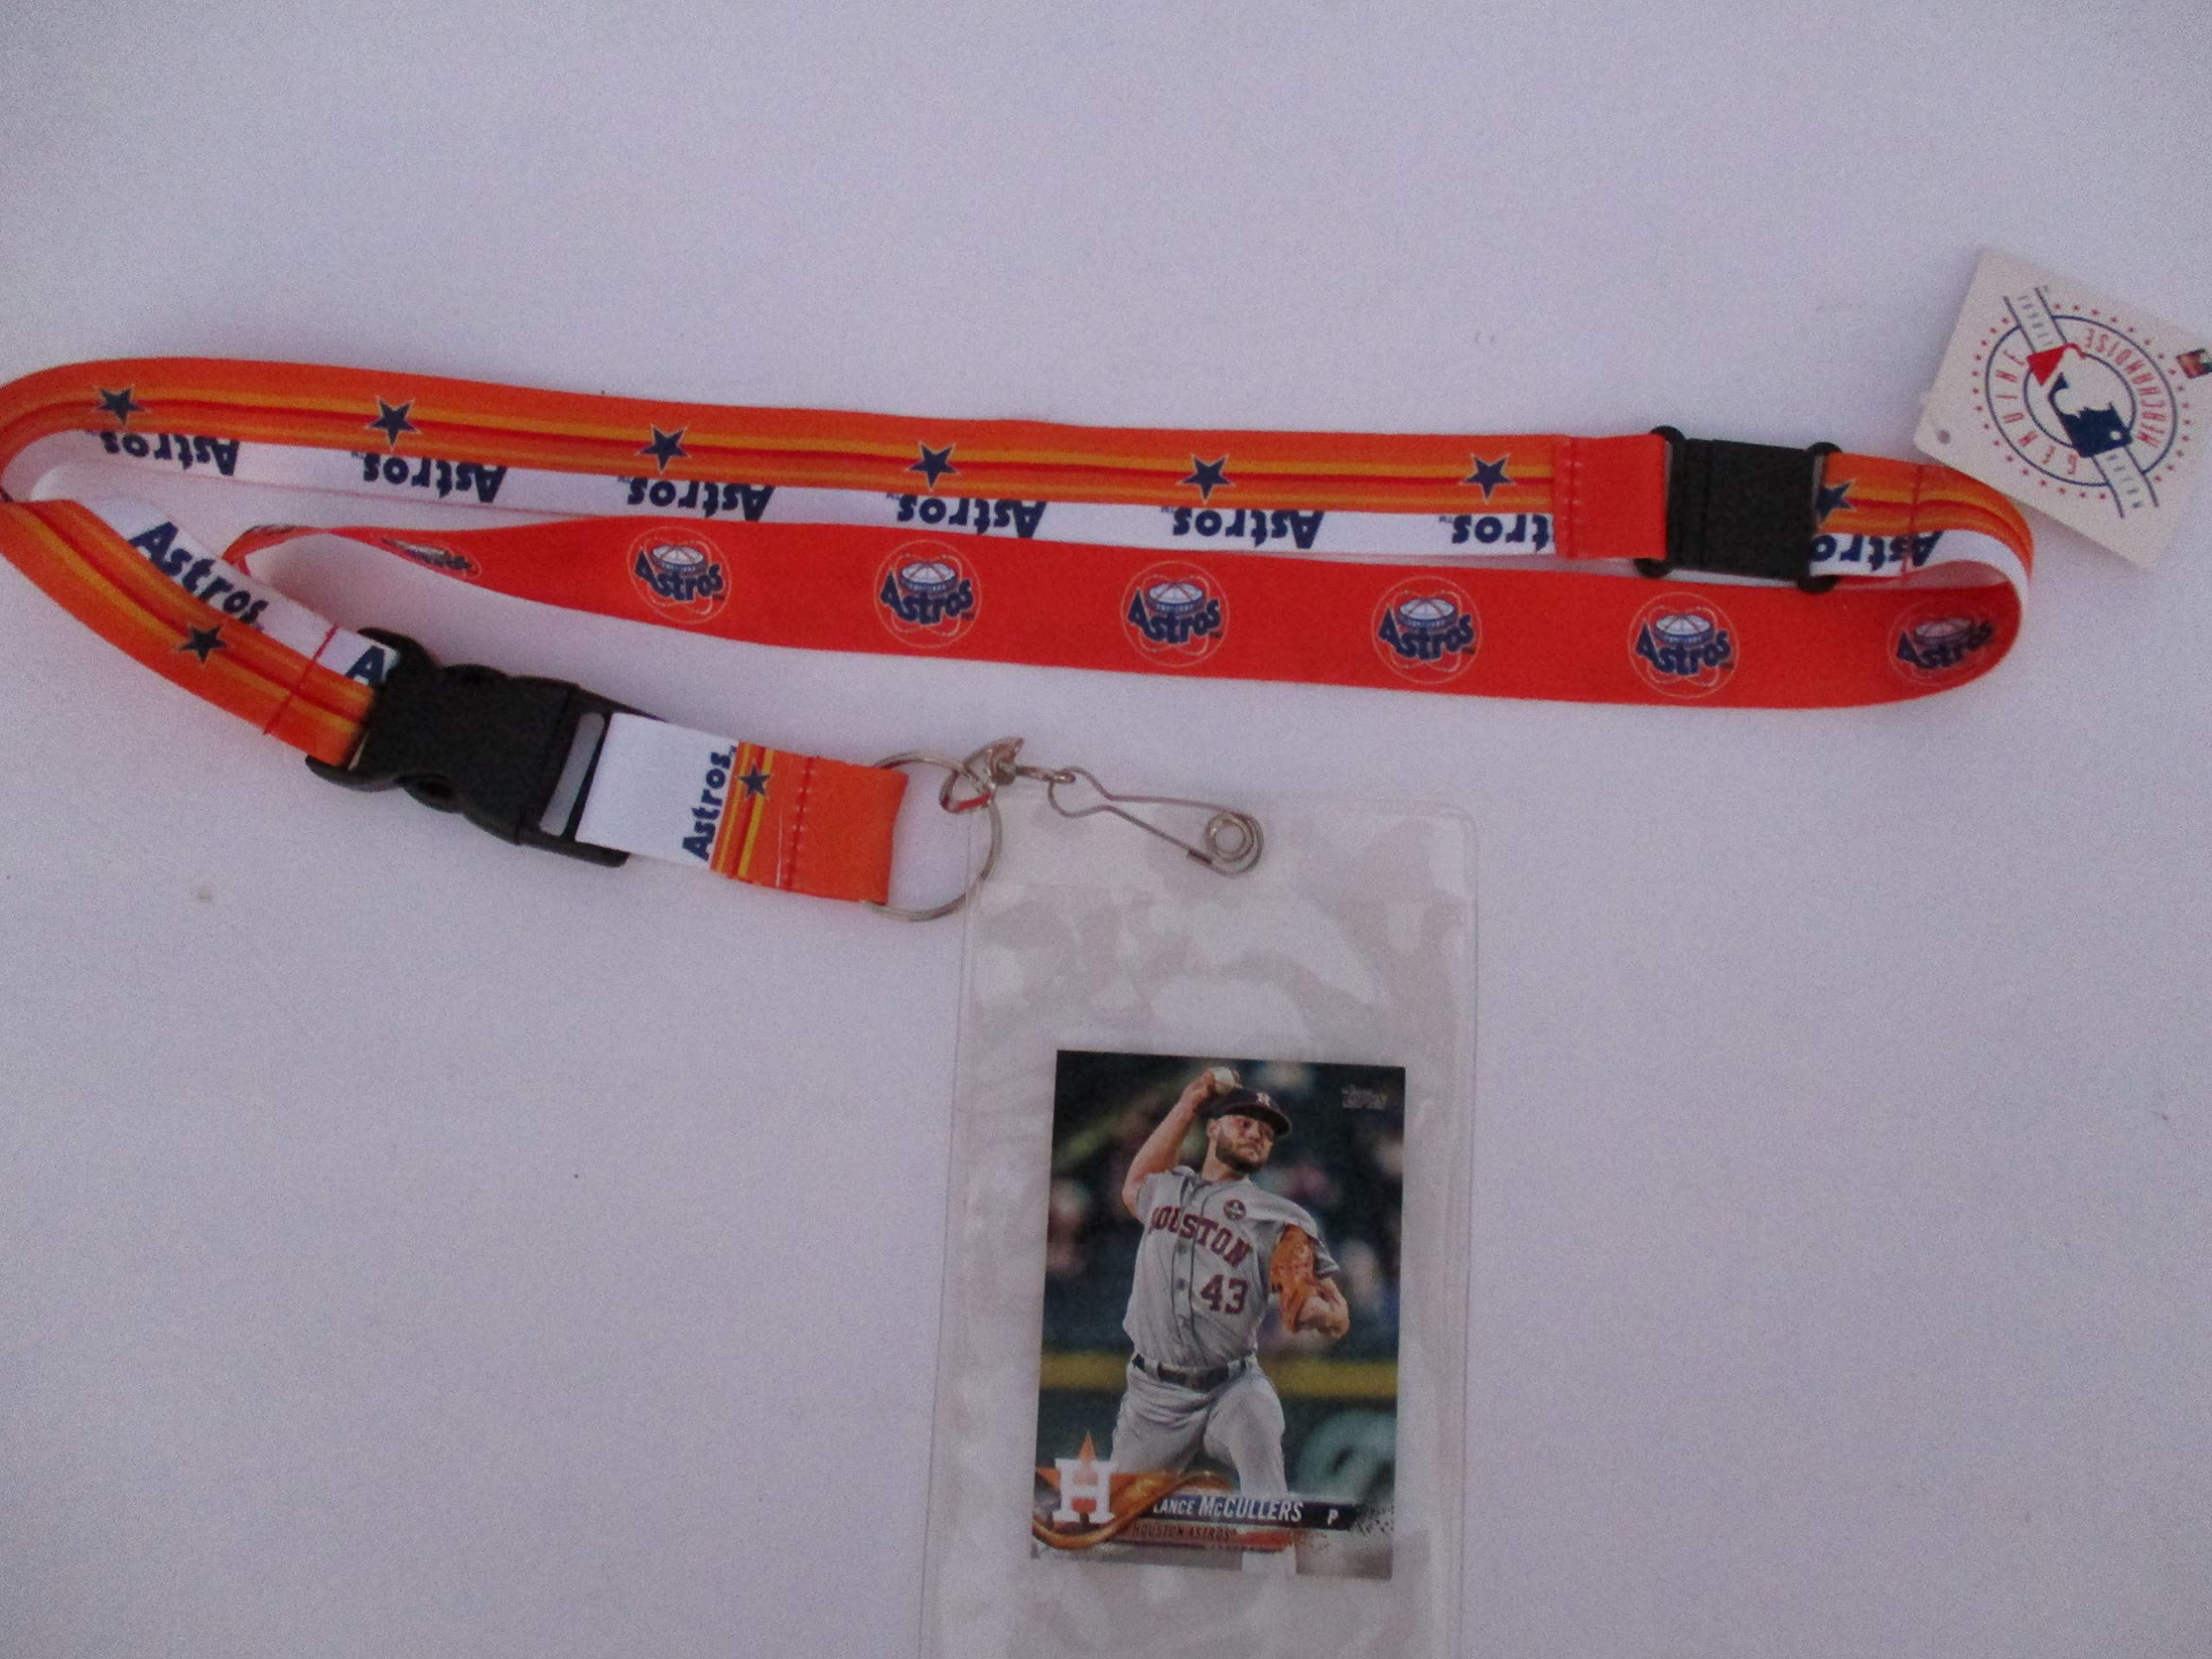 HOUSTON ASTROS RETRO LANYARD WITH TICKET HOLDER PLUS COLLECTIBLE PLAYER CARD